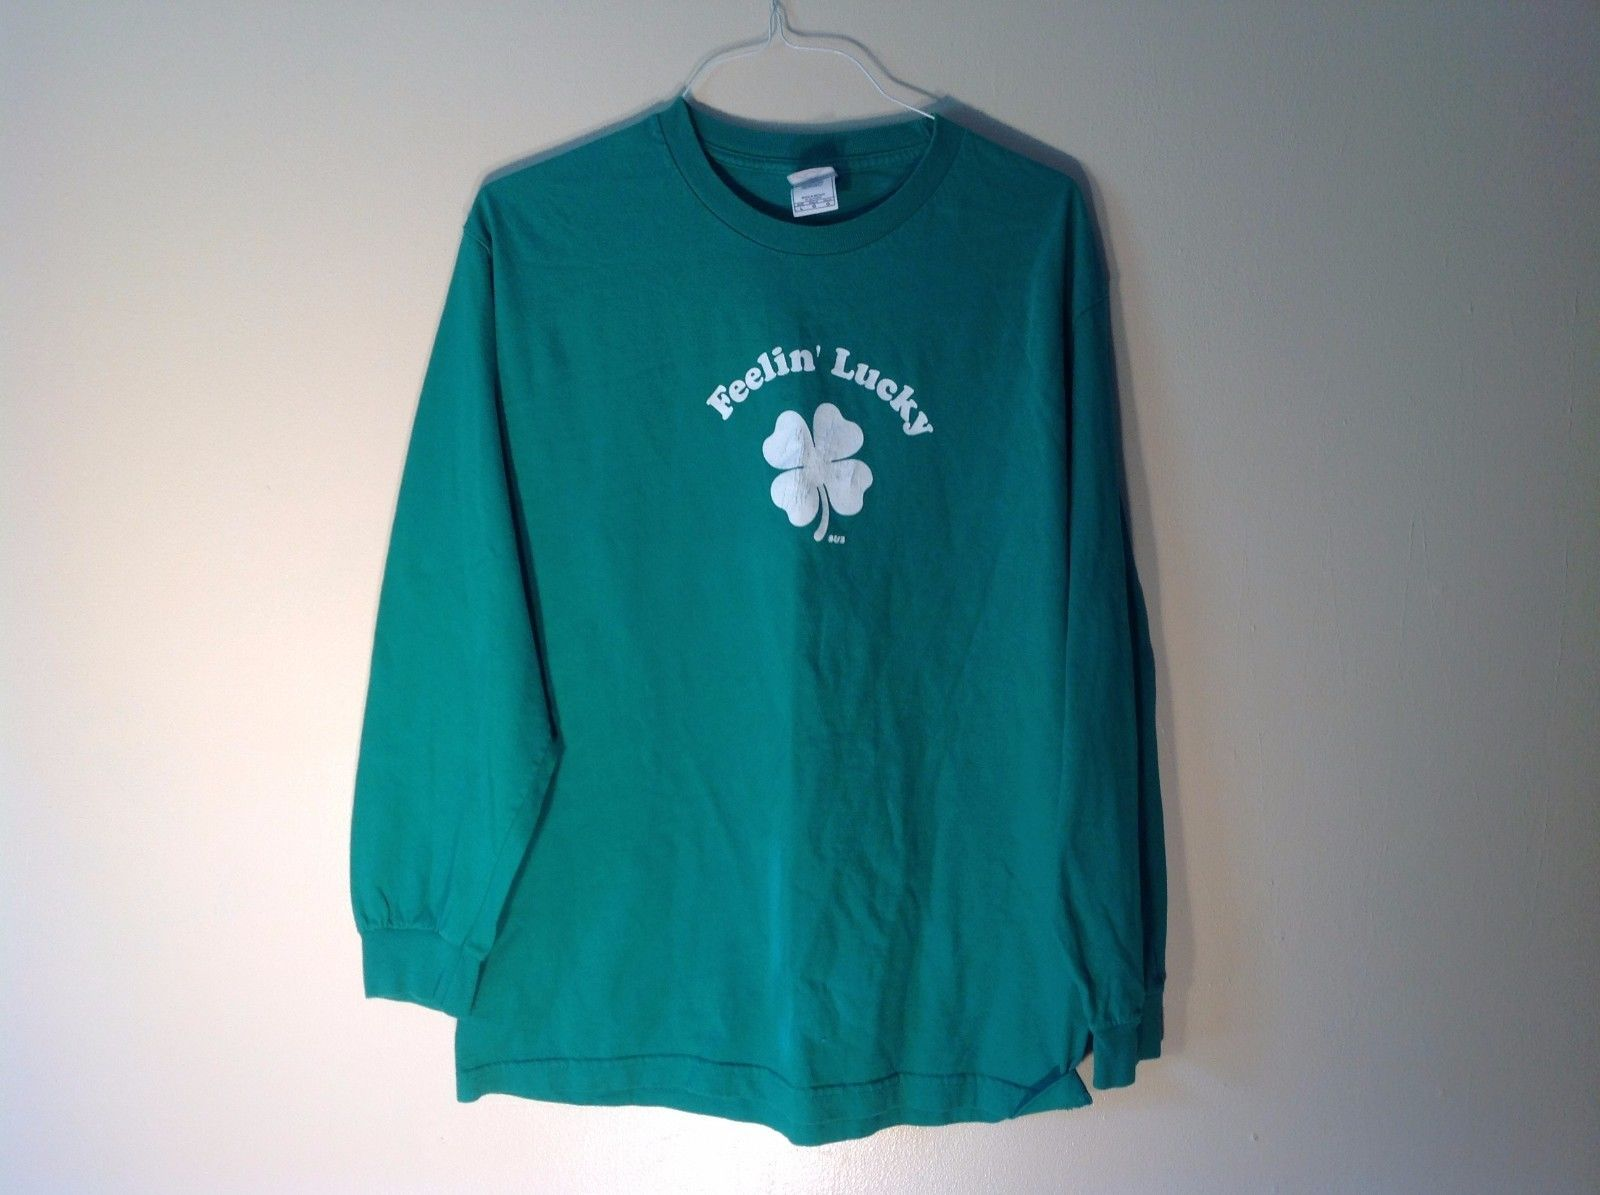 Good Condition Aistyle Apparel & Activewear Large Green T-shirt Feelin' Lucky